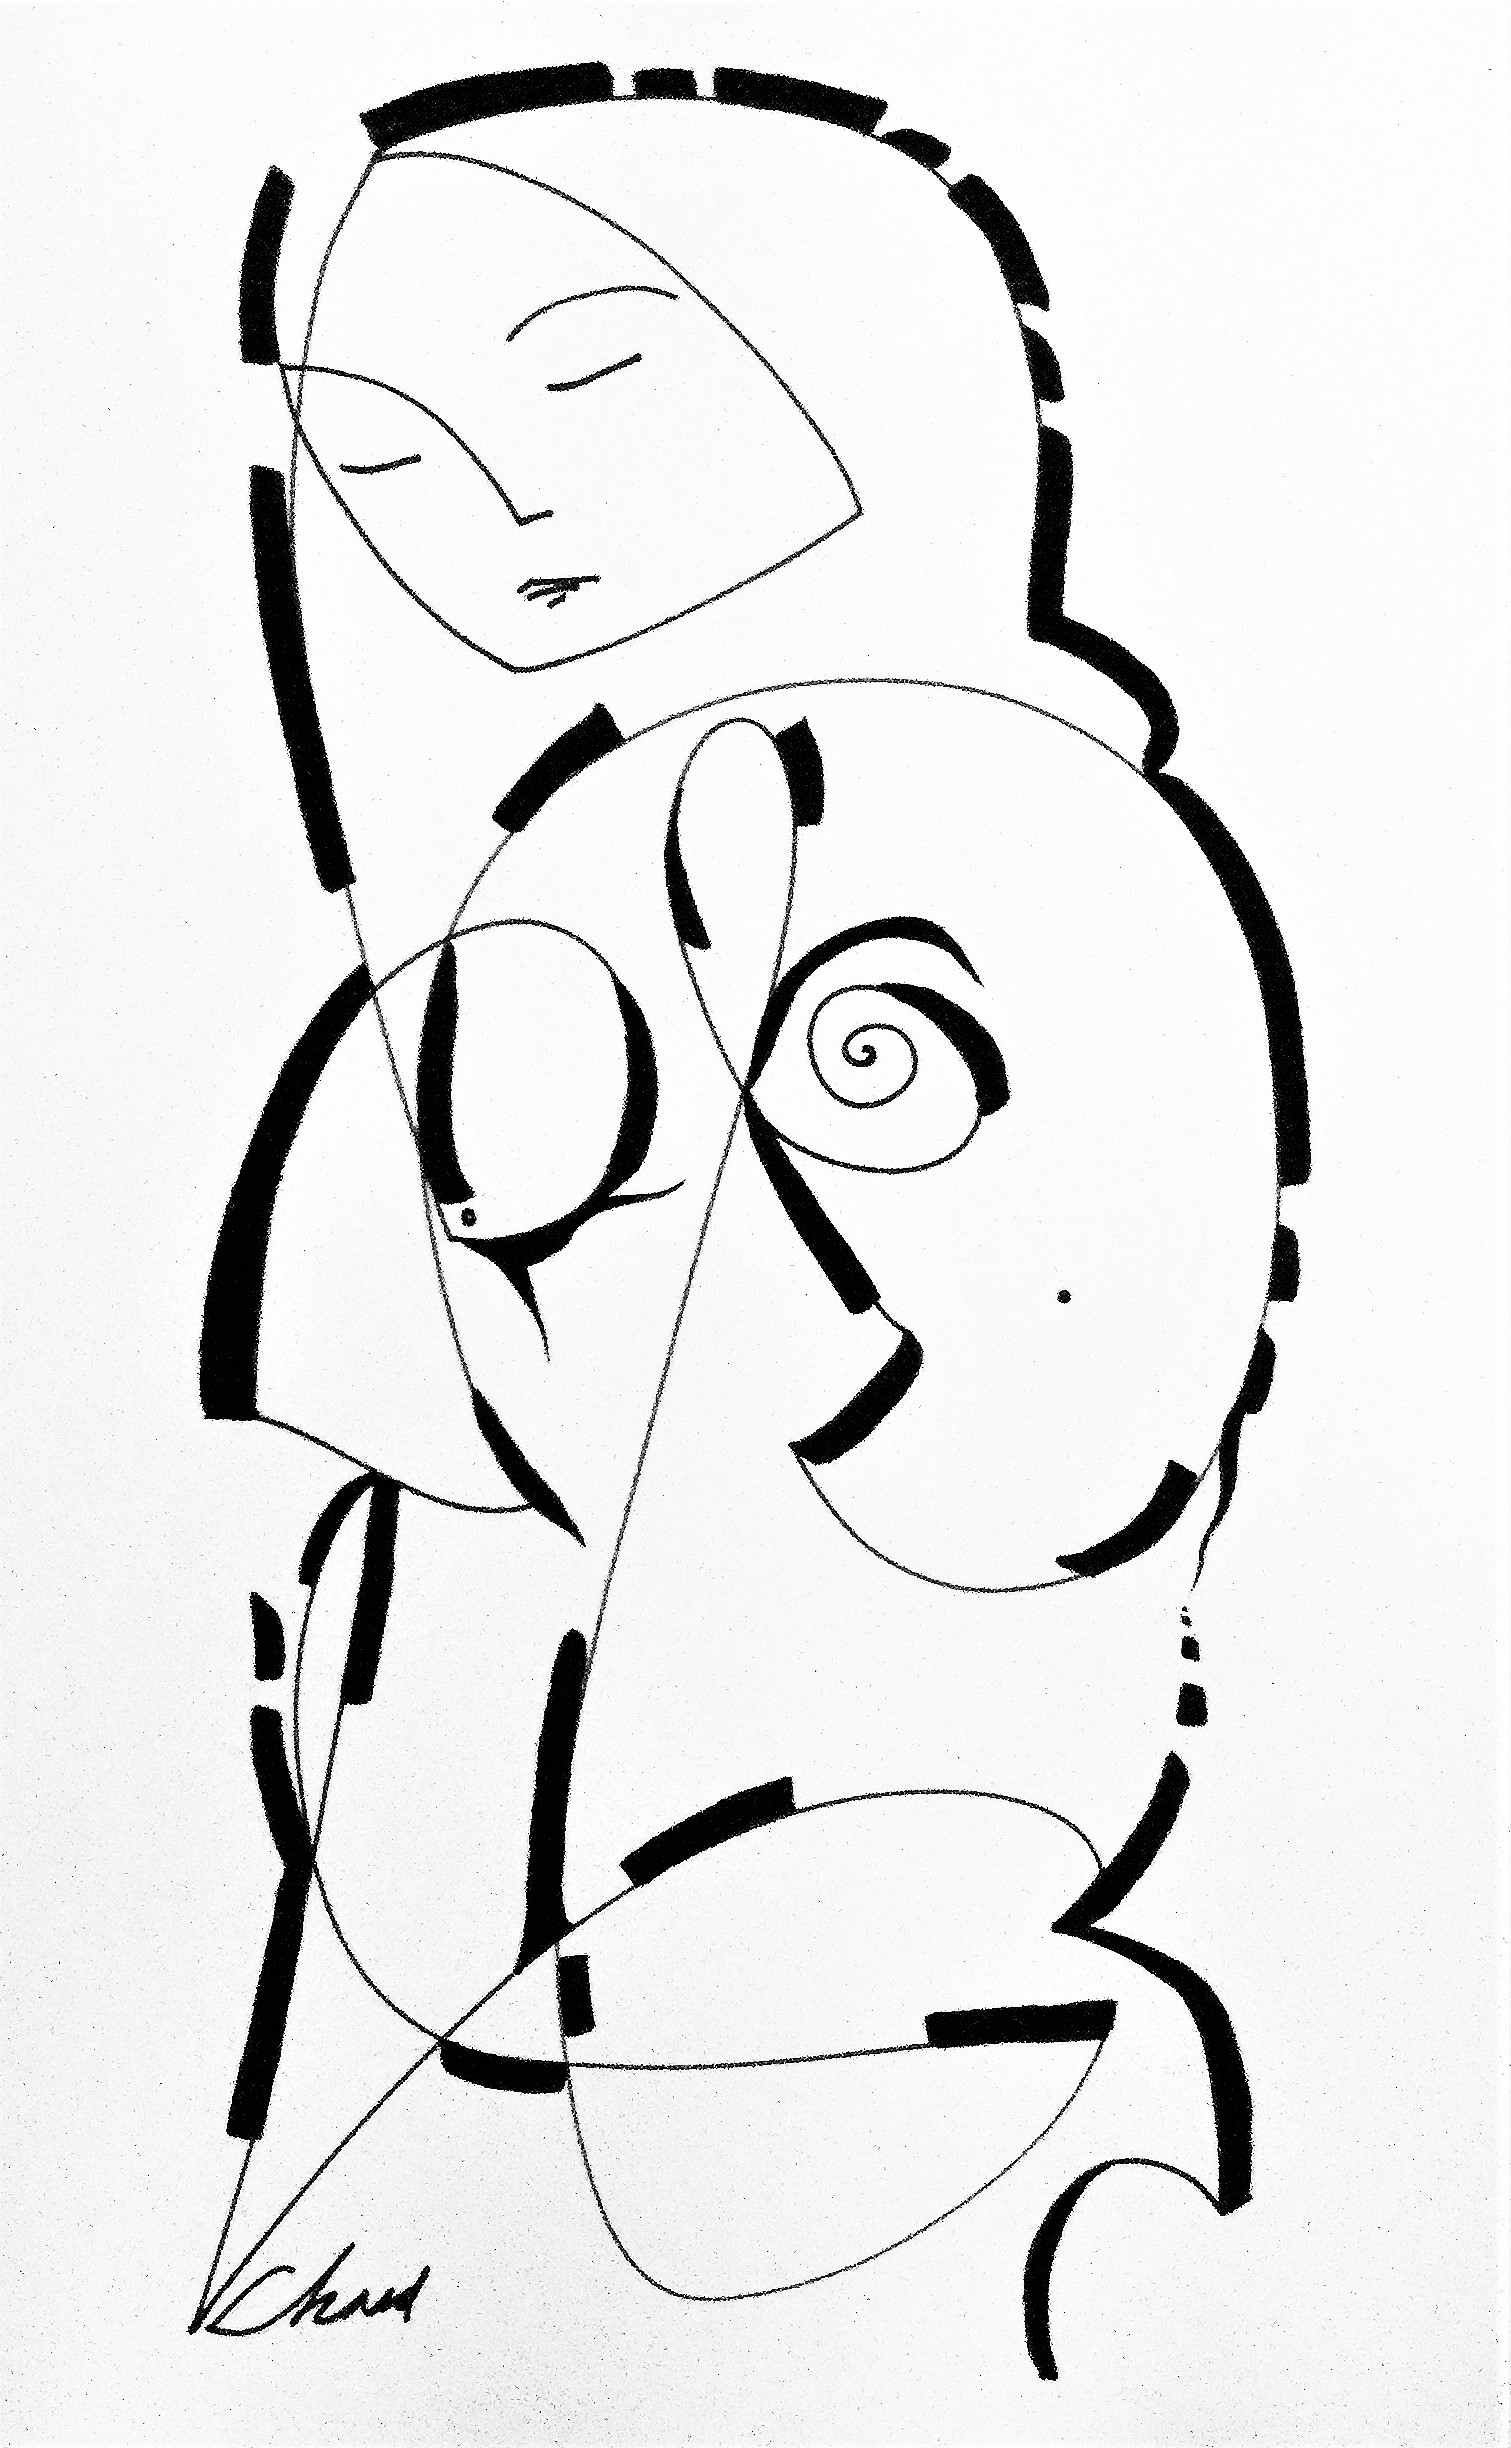 8_Amour - ink paperwork - 23 in x 29 in